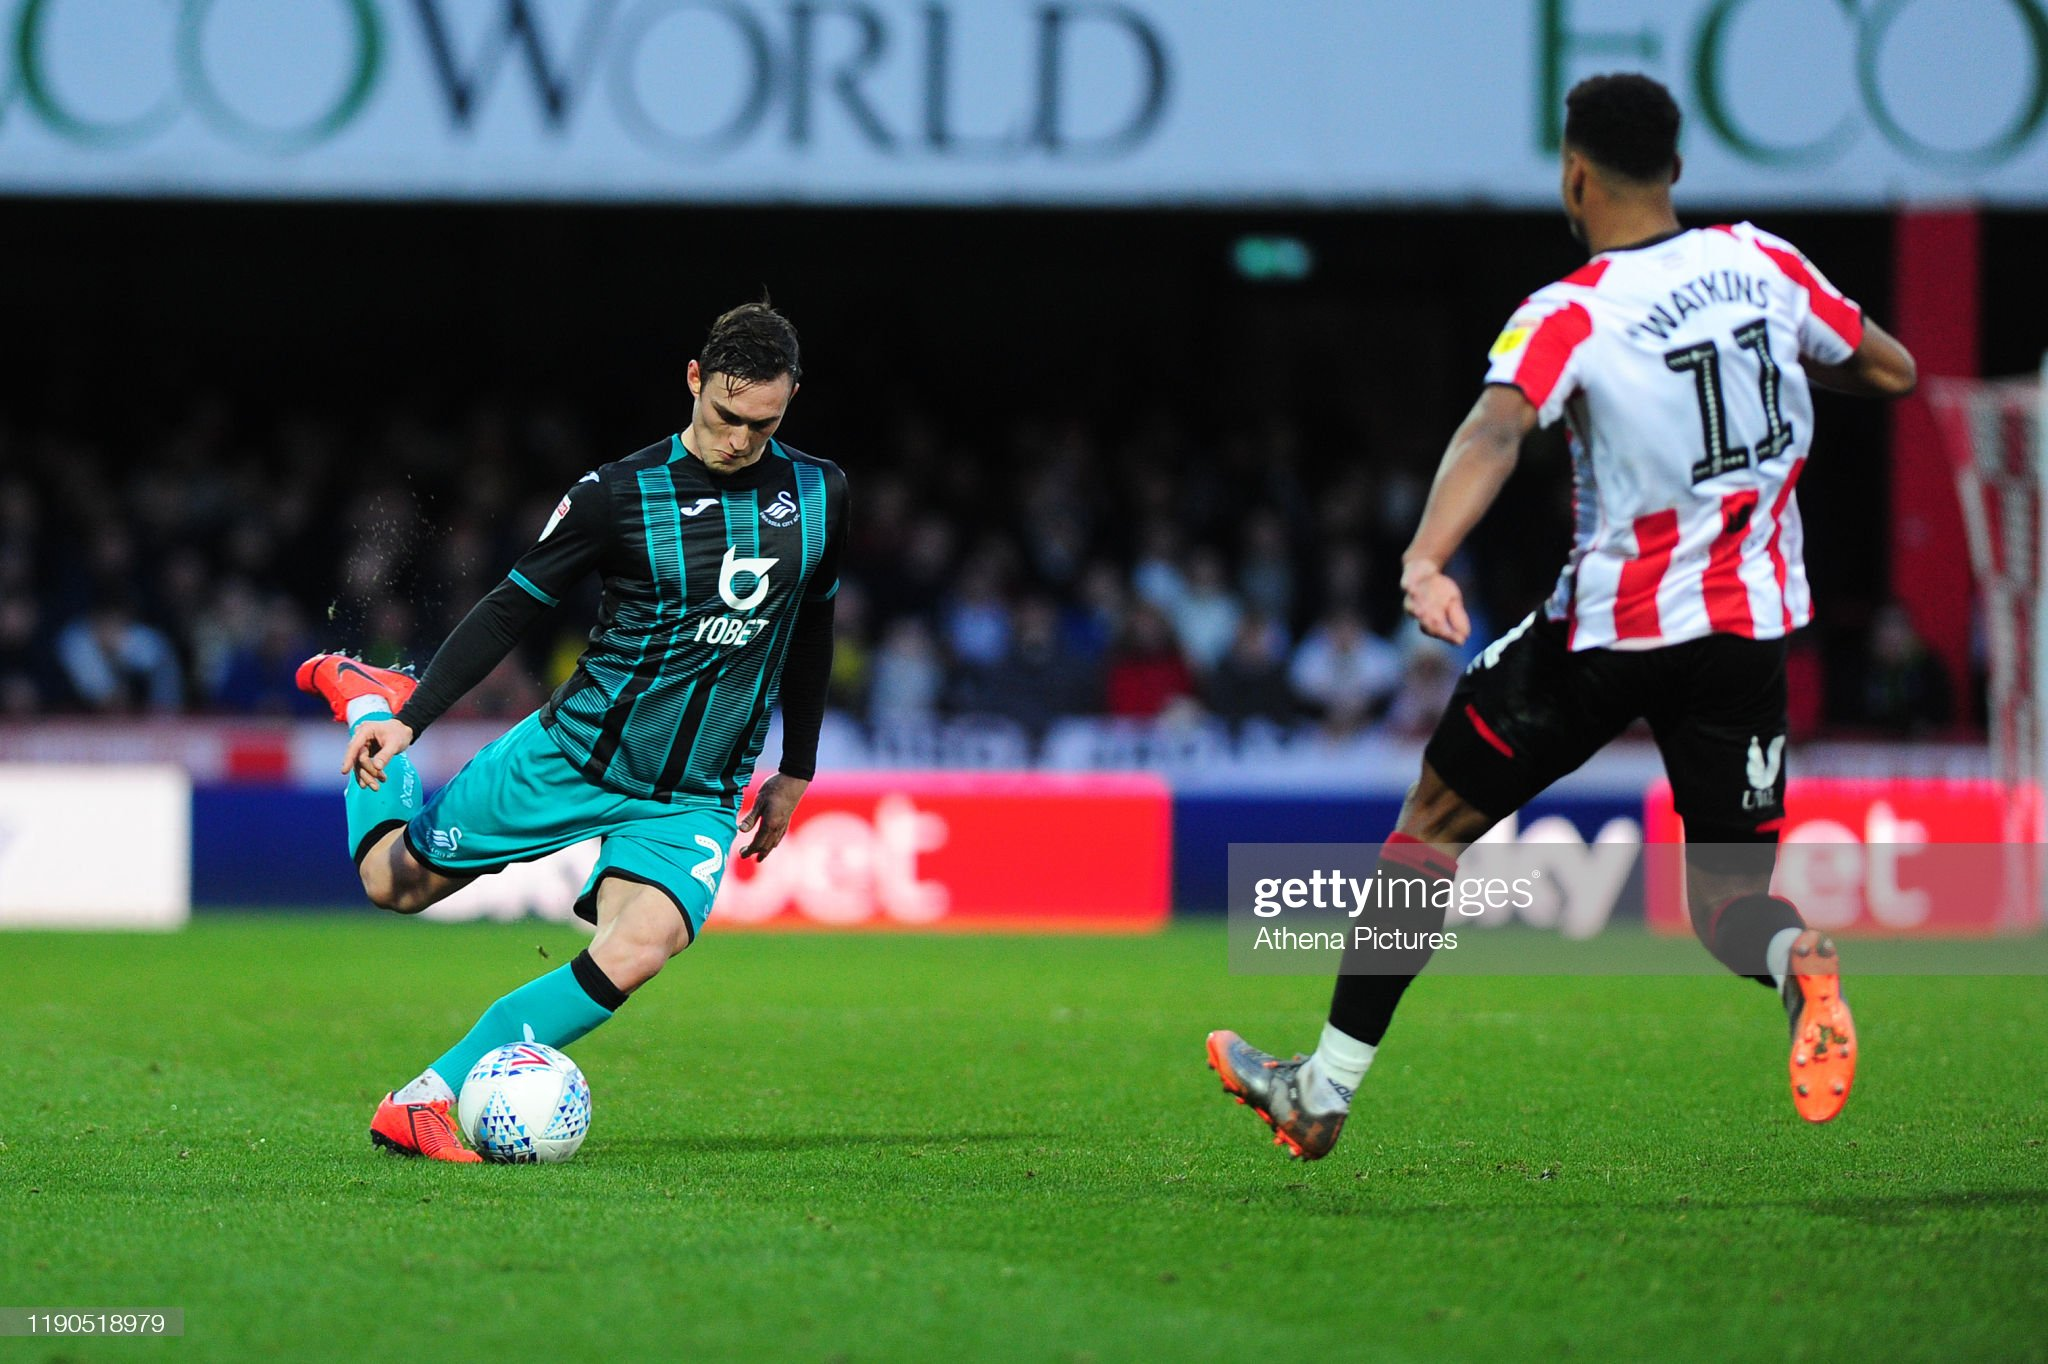 Swansea City vs Brentford Preview, prediction and odds